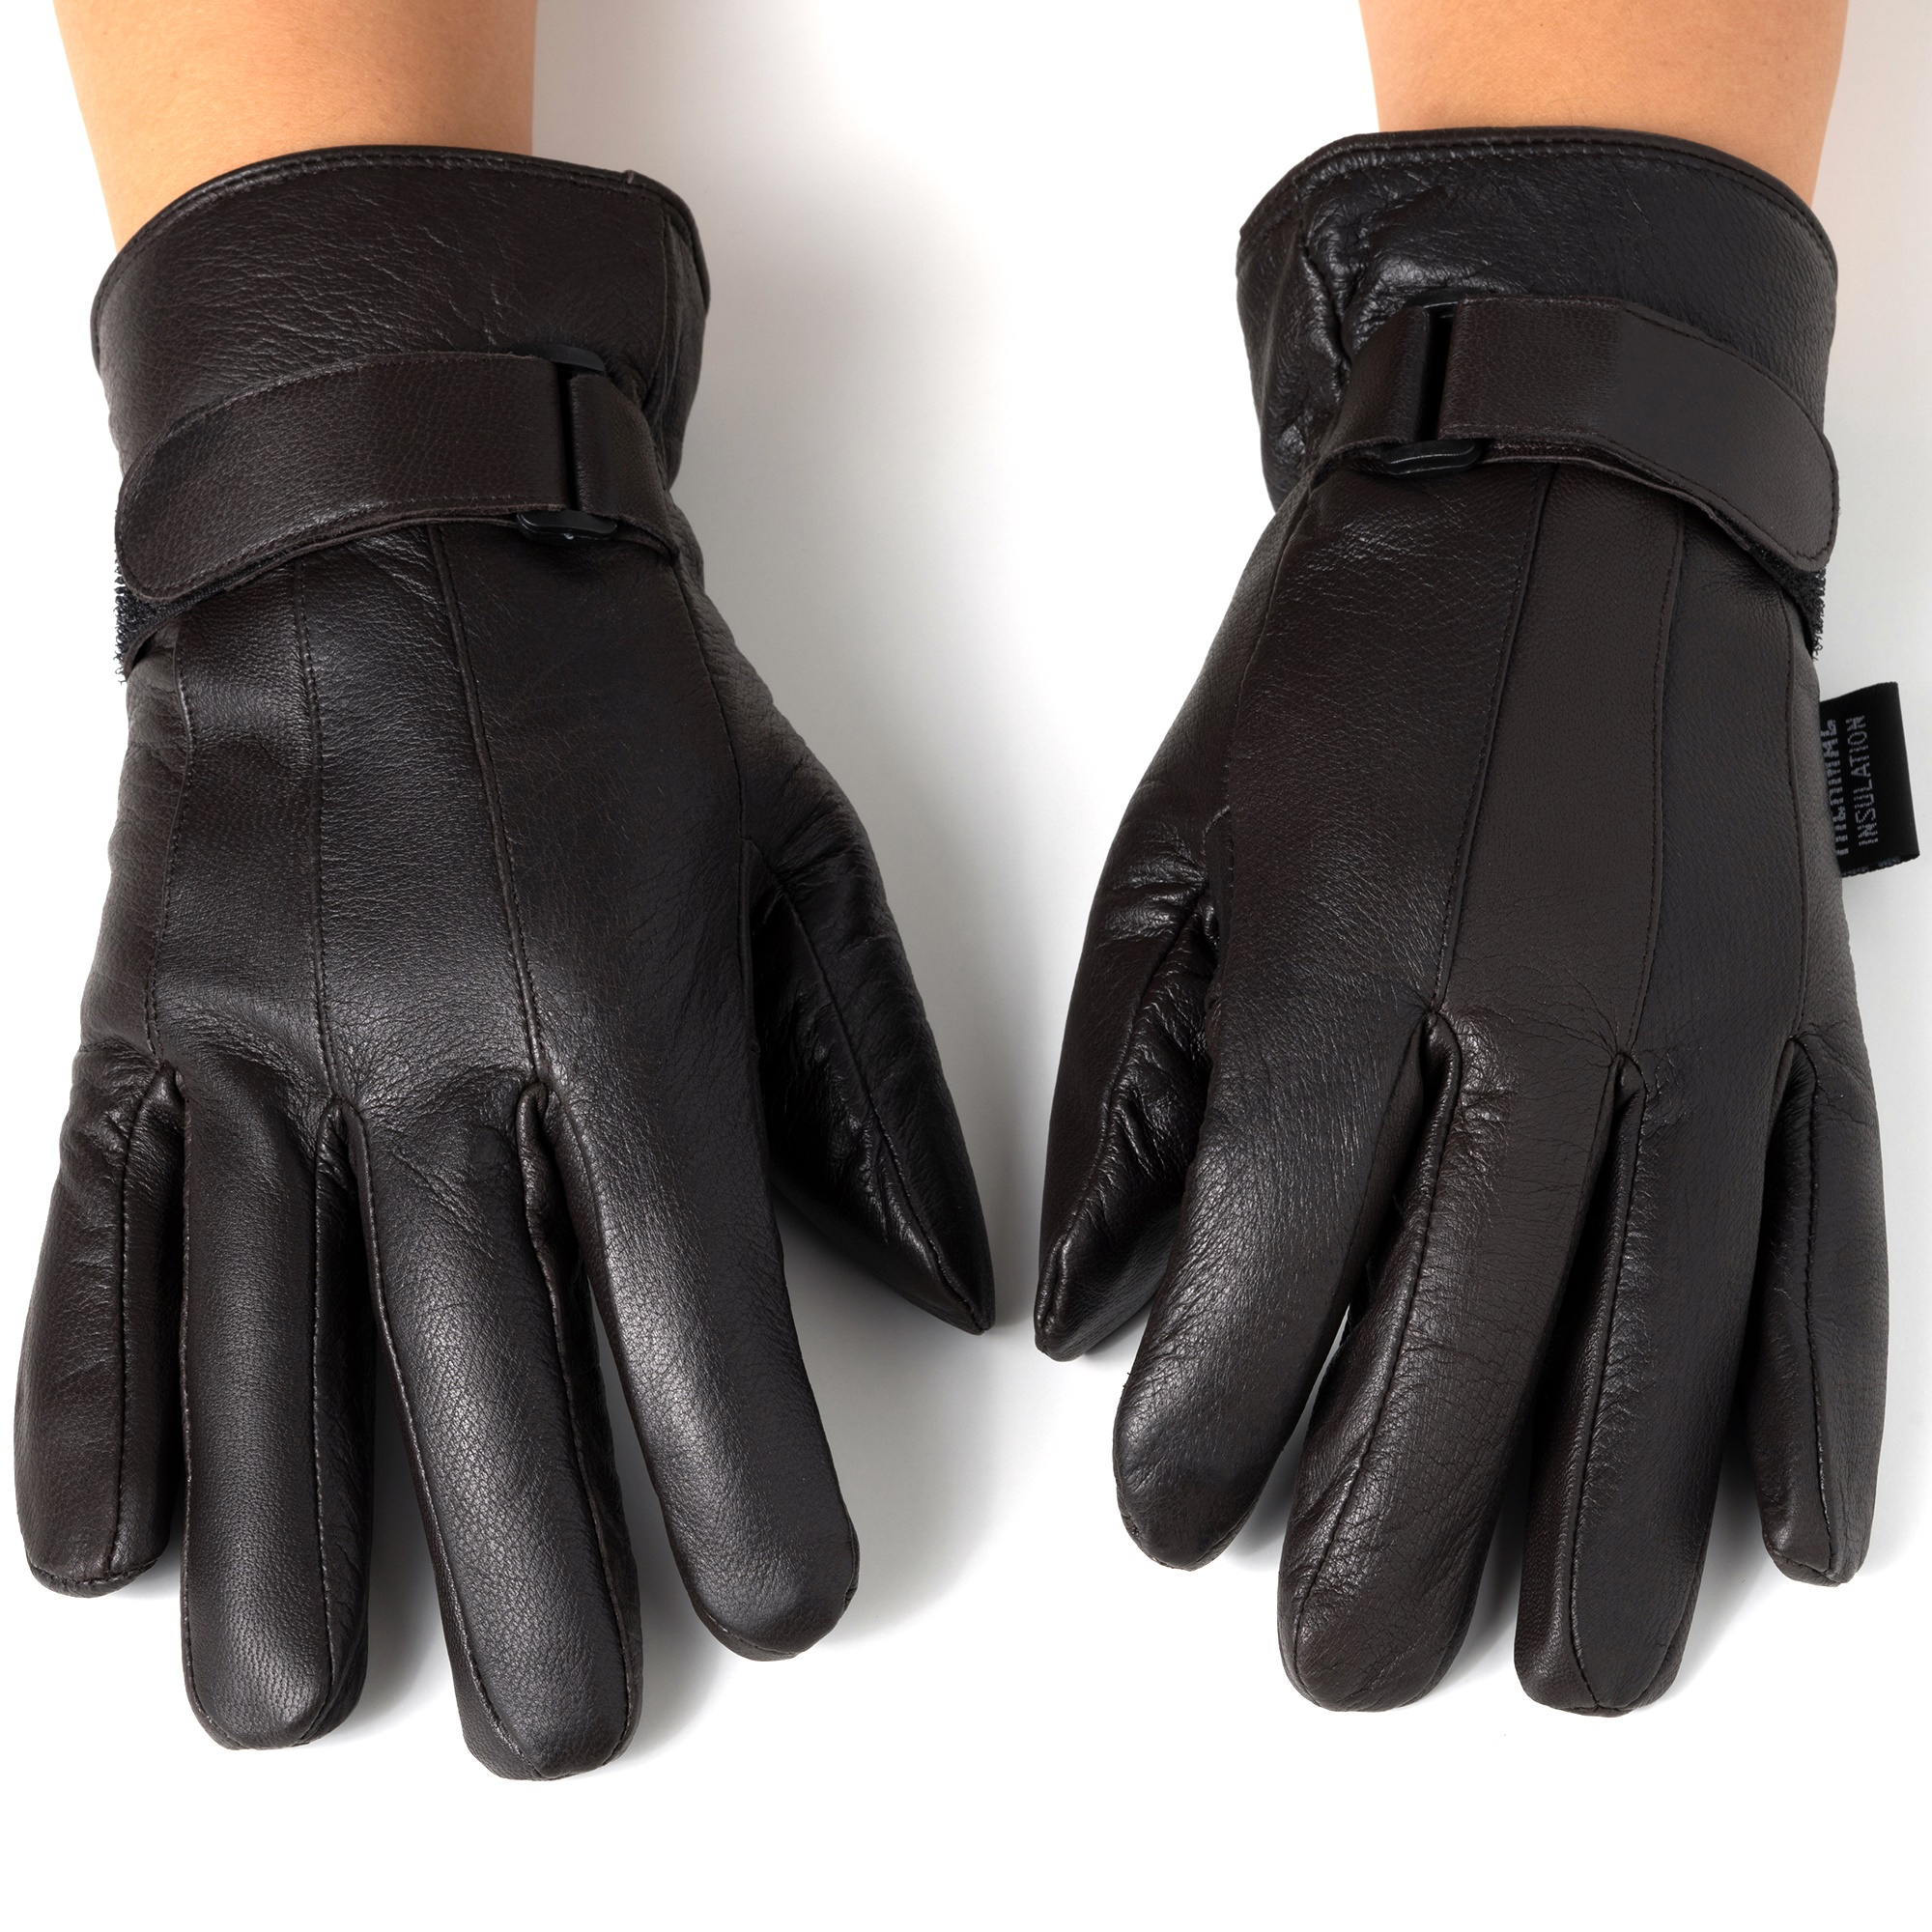 Alpine-Swiss-Mens-Gloves-Dressy-Genuine-Leather-Warm-Thermal-Lined-Wrist-Strap thumbnail 21